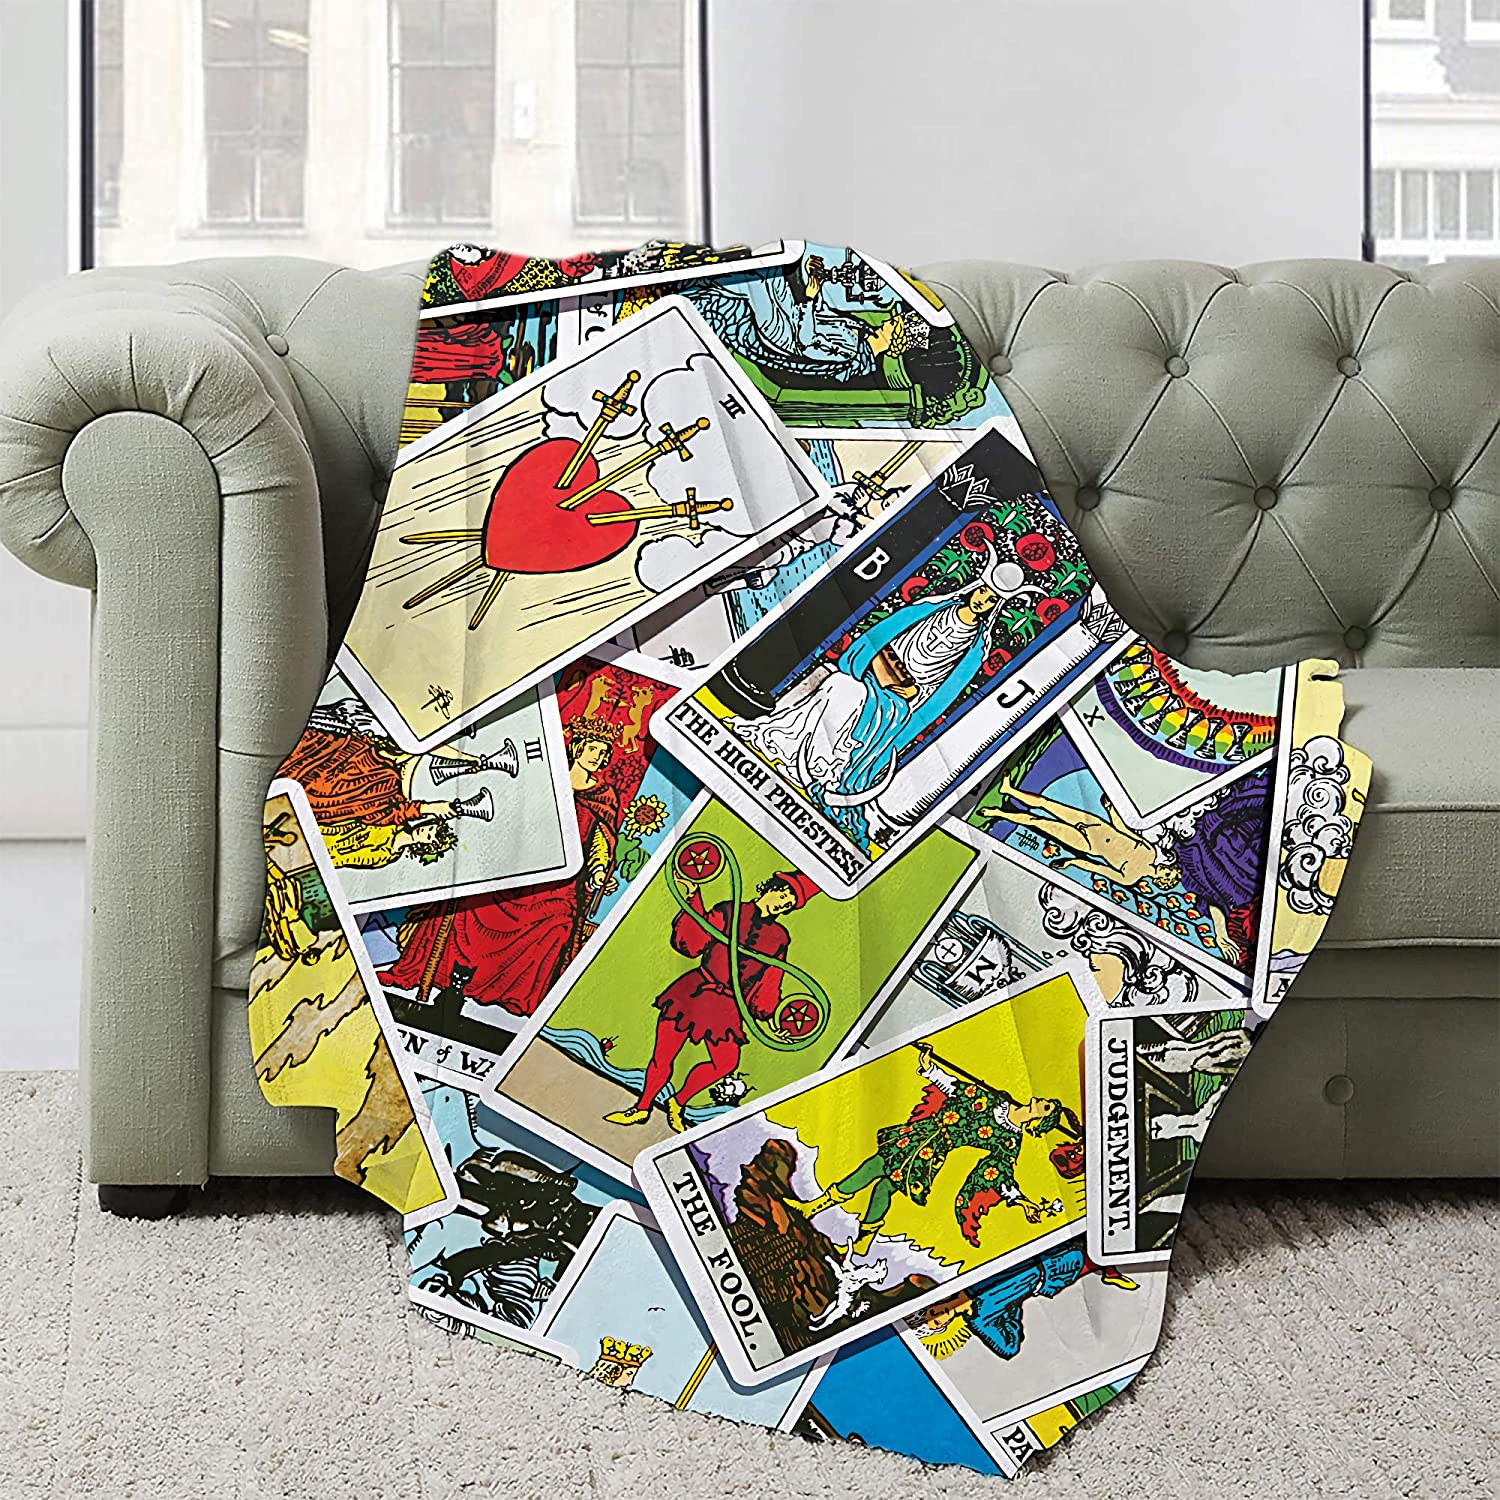 AIBILEEN Tarot Cards Judgement Low price The Occupies Flannel Blanket High material Fool